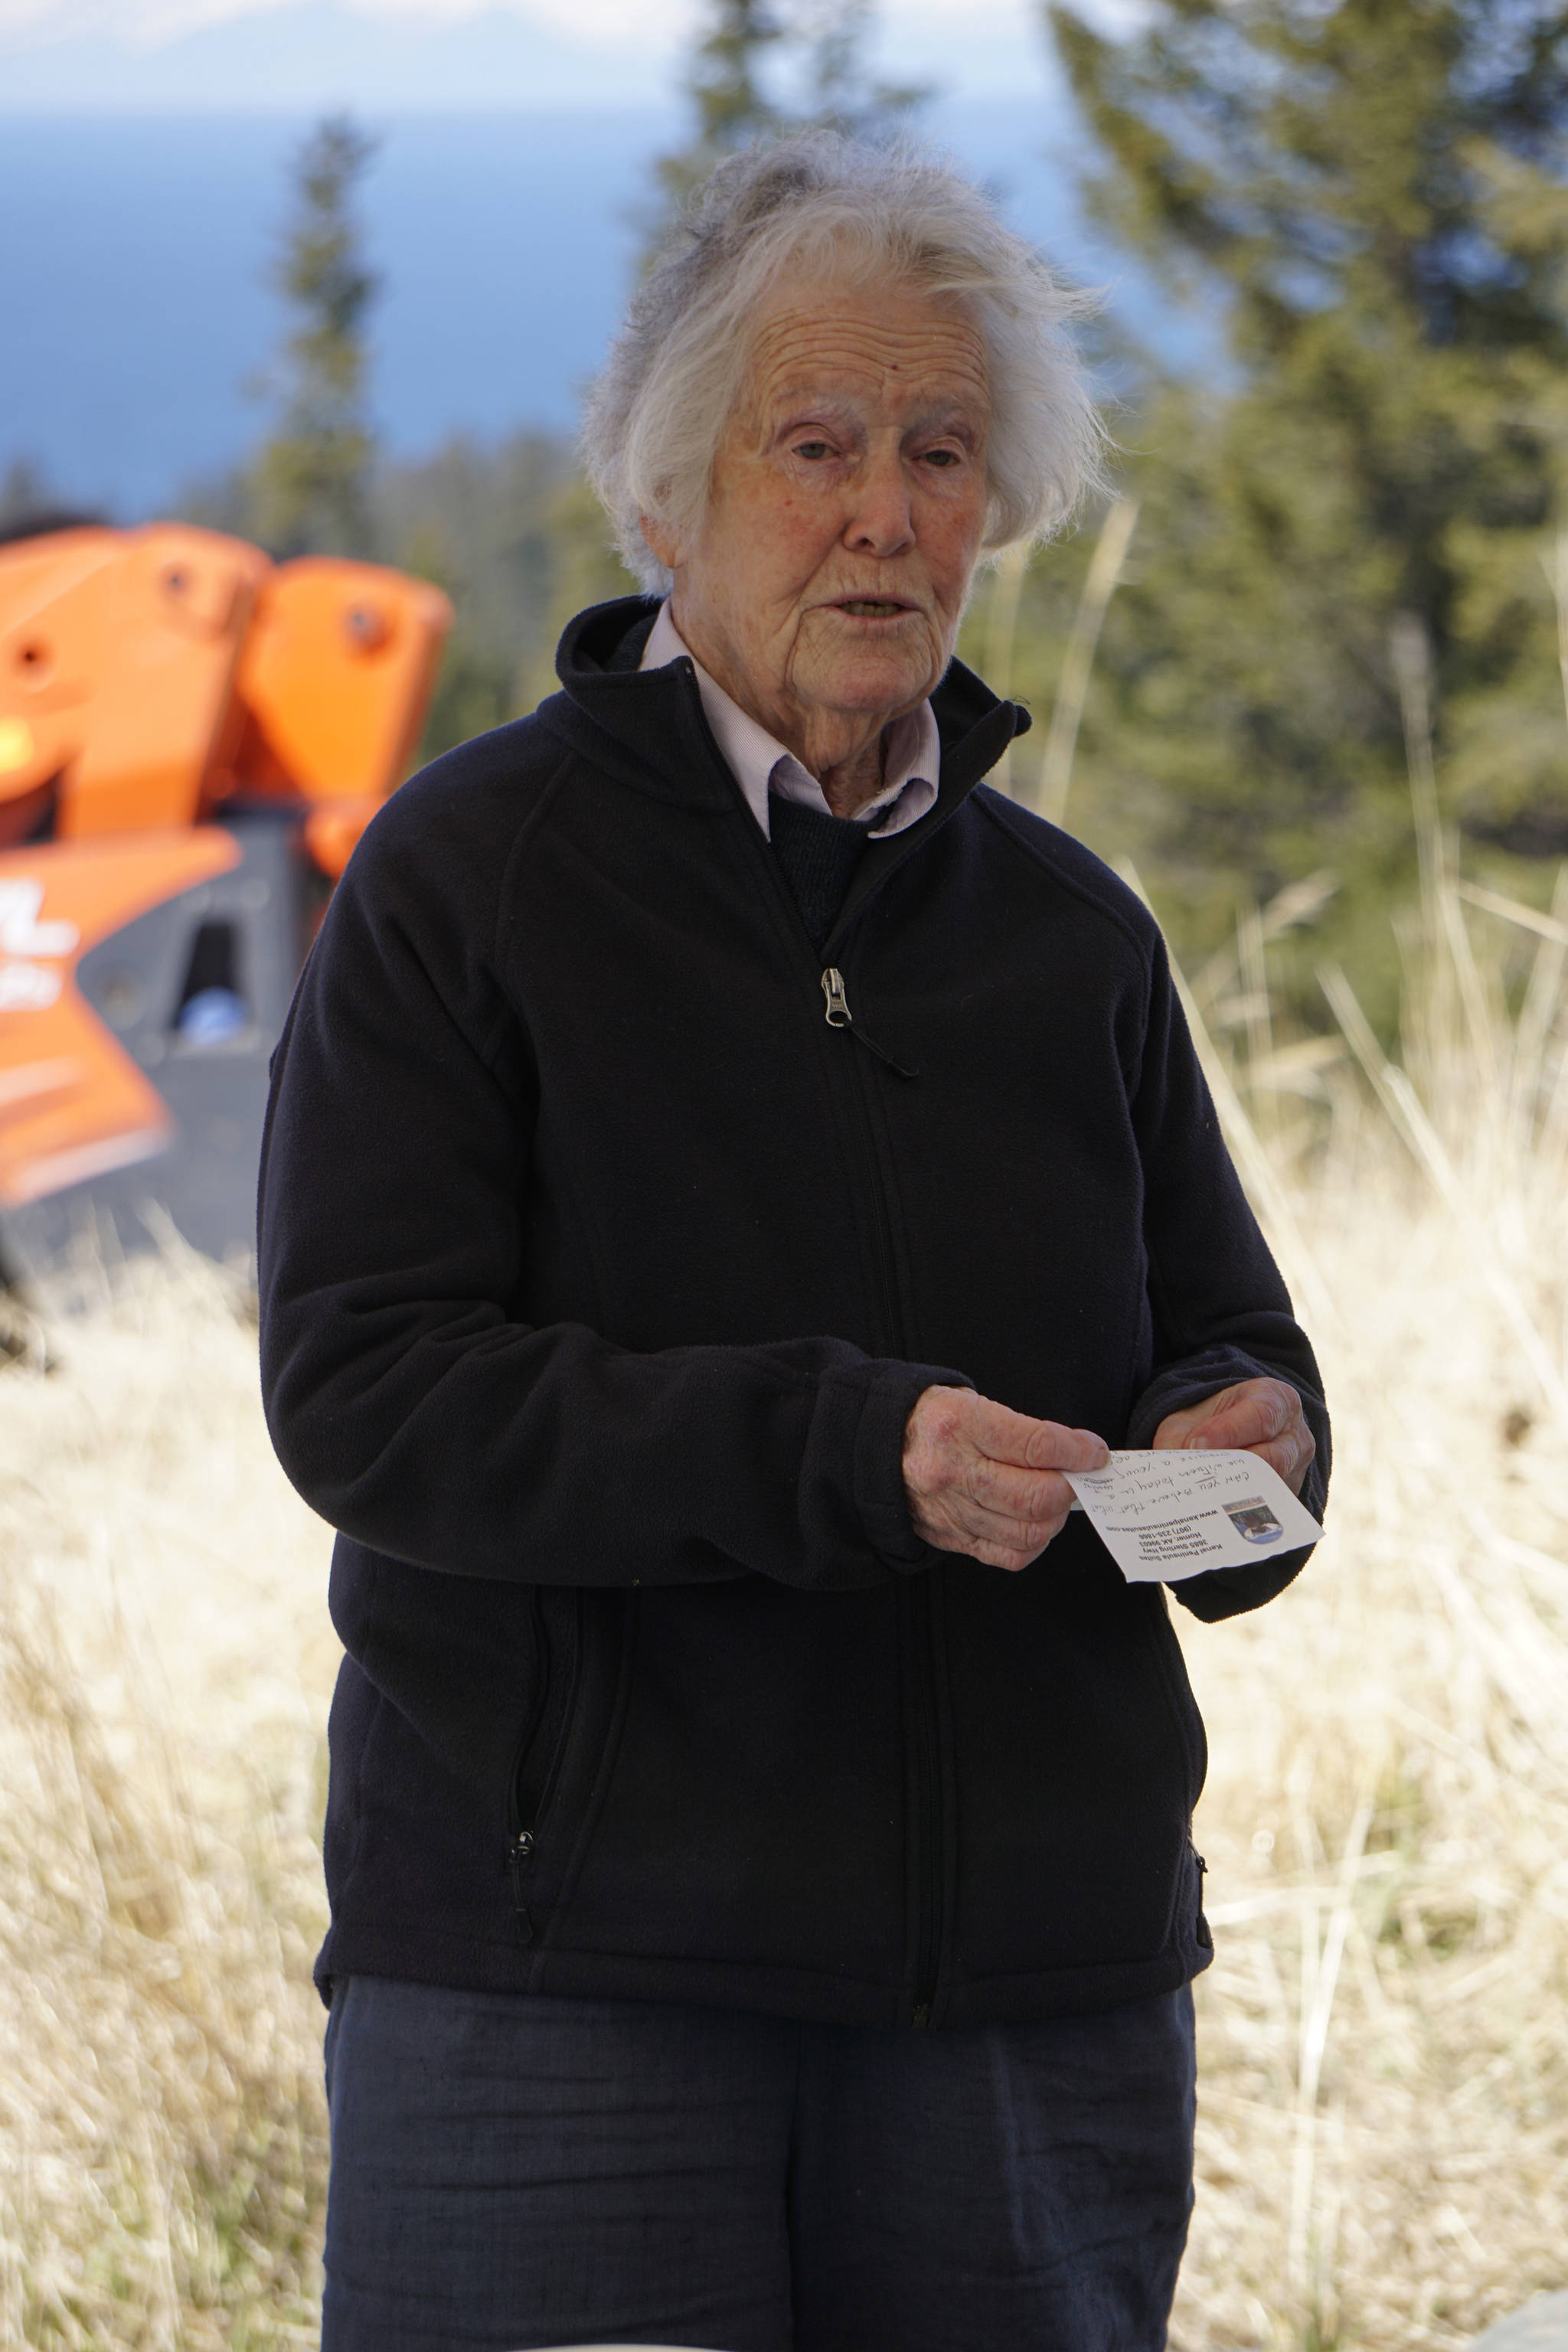 Nancy Skinner Nordhoff speaks at groundbreaking ceremonies for the Storyknife Writers Retreat last Saturday, May 4, 2019, at the retreat property in Homer, Alaska. Nordhoff founded Hedgebrook, Whidbey Island, Washington, the first women's writer retreat in the United States, that was the model for Storyknife. Storyknife founder Dana Stabenow attended Hedgebrook 30 years ago.Construction started this month on the main house and cabins that will in a year house visiting women writers. (Photo by Michael Armstrong/Homer News)